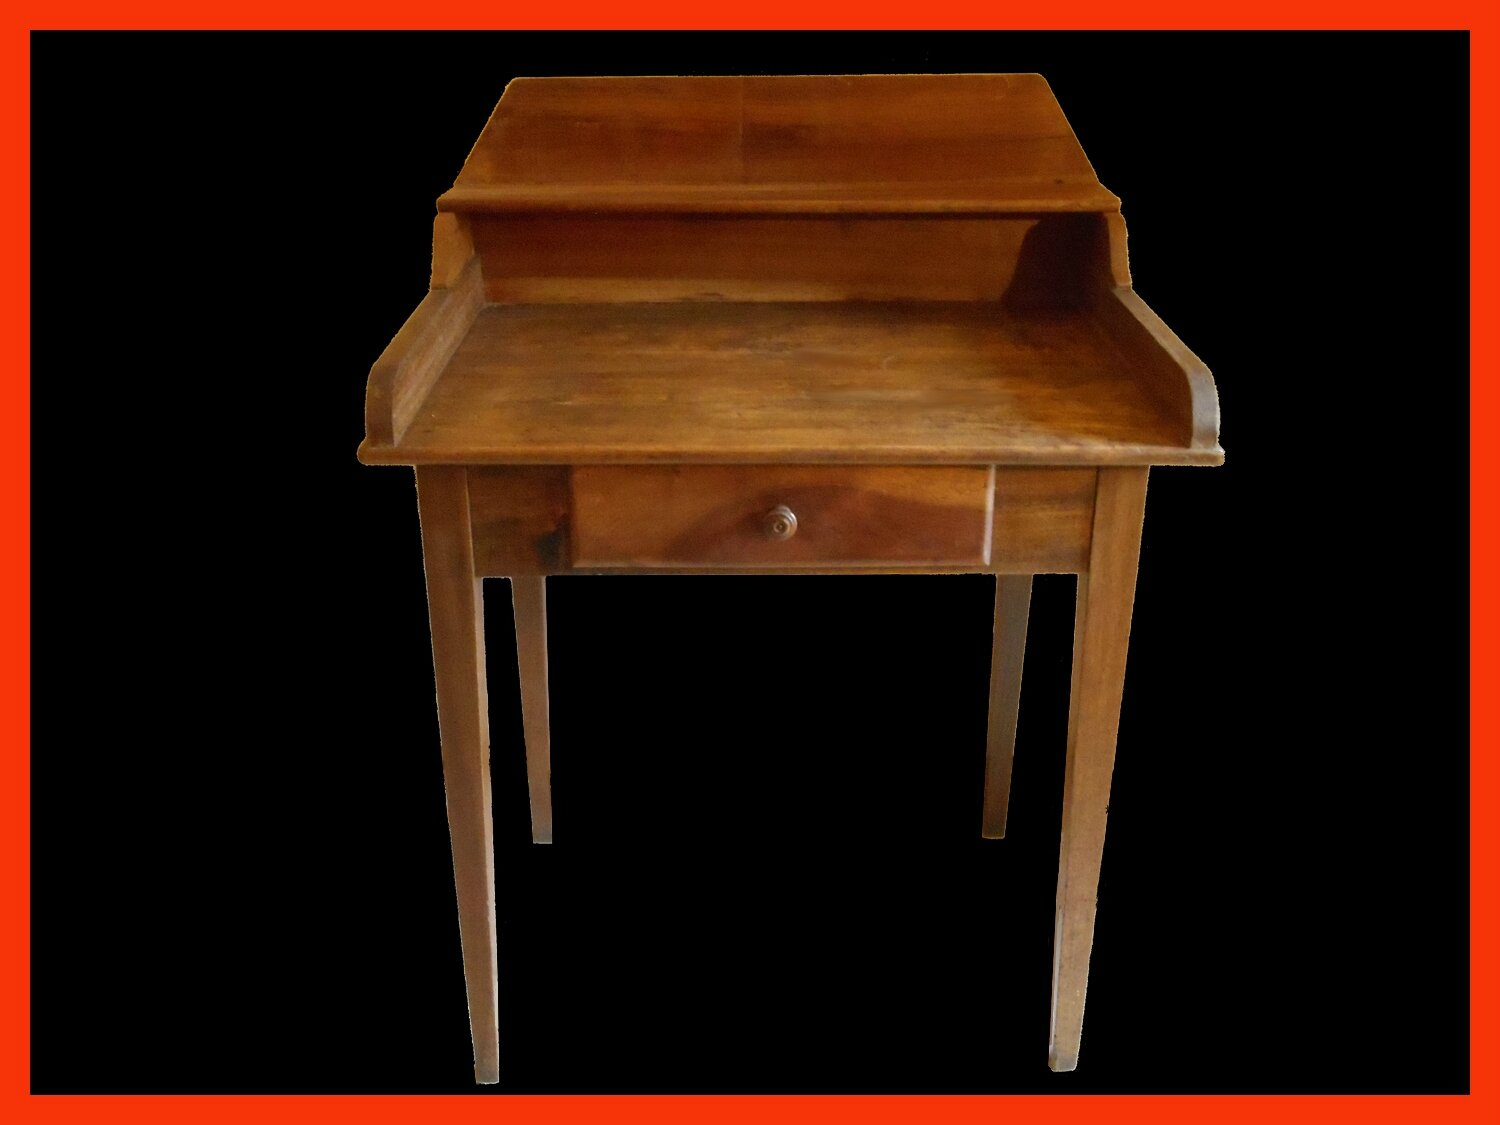 Table ecrire petit bureau ancien en noyer massif for Table bureau